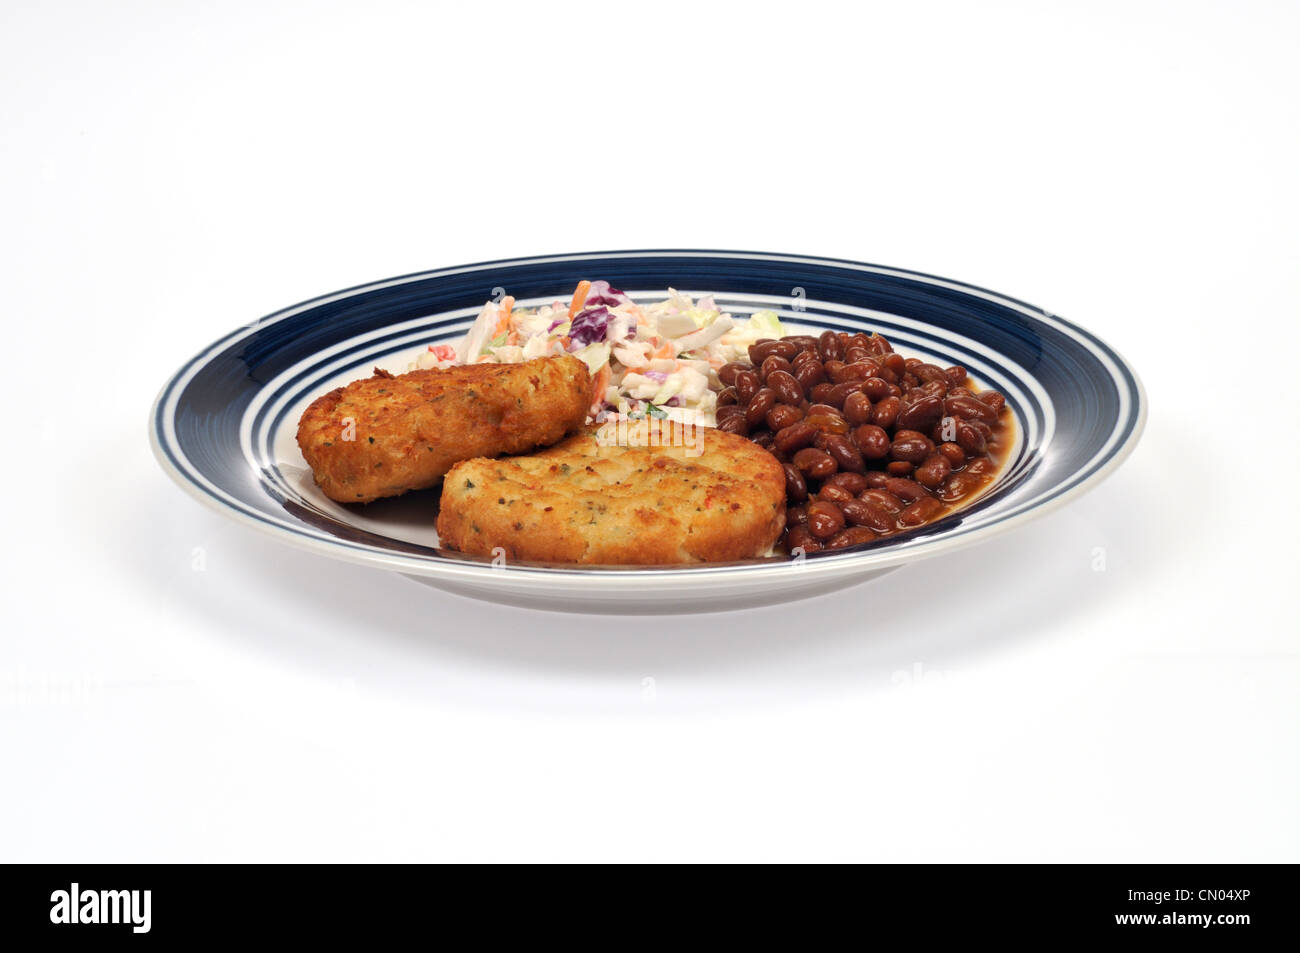 Plate of cod fishcakes with cole slaw and boston baked beans - Stock Image